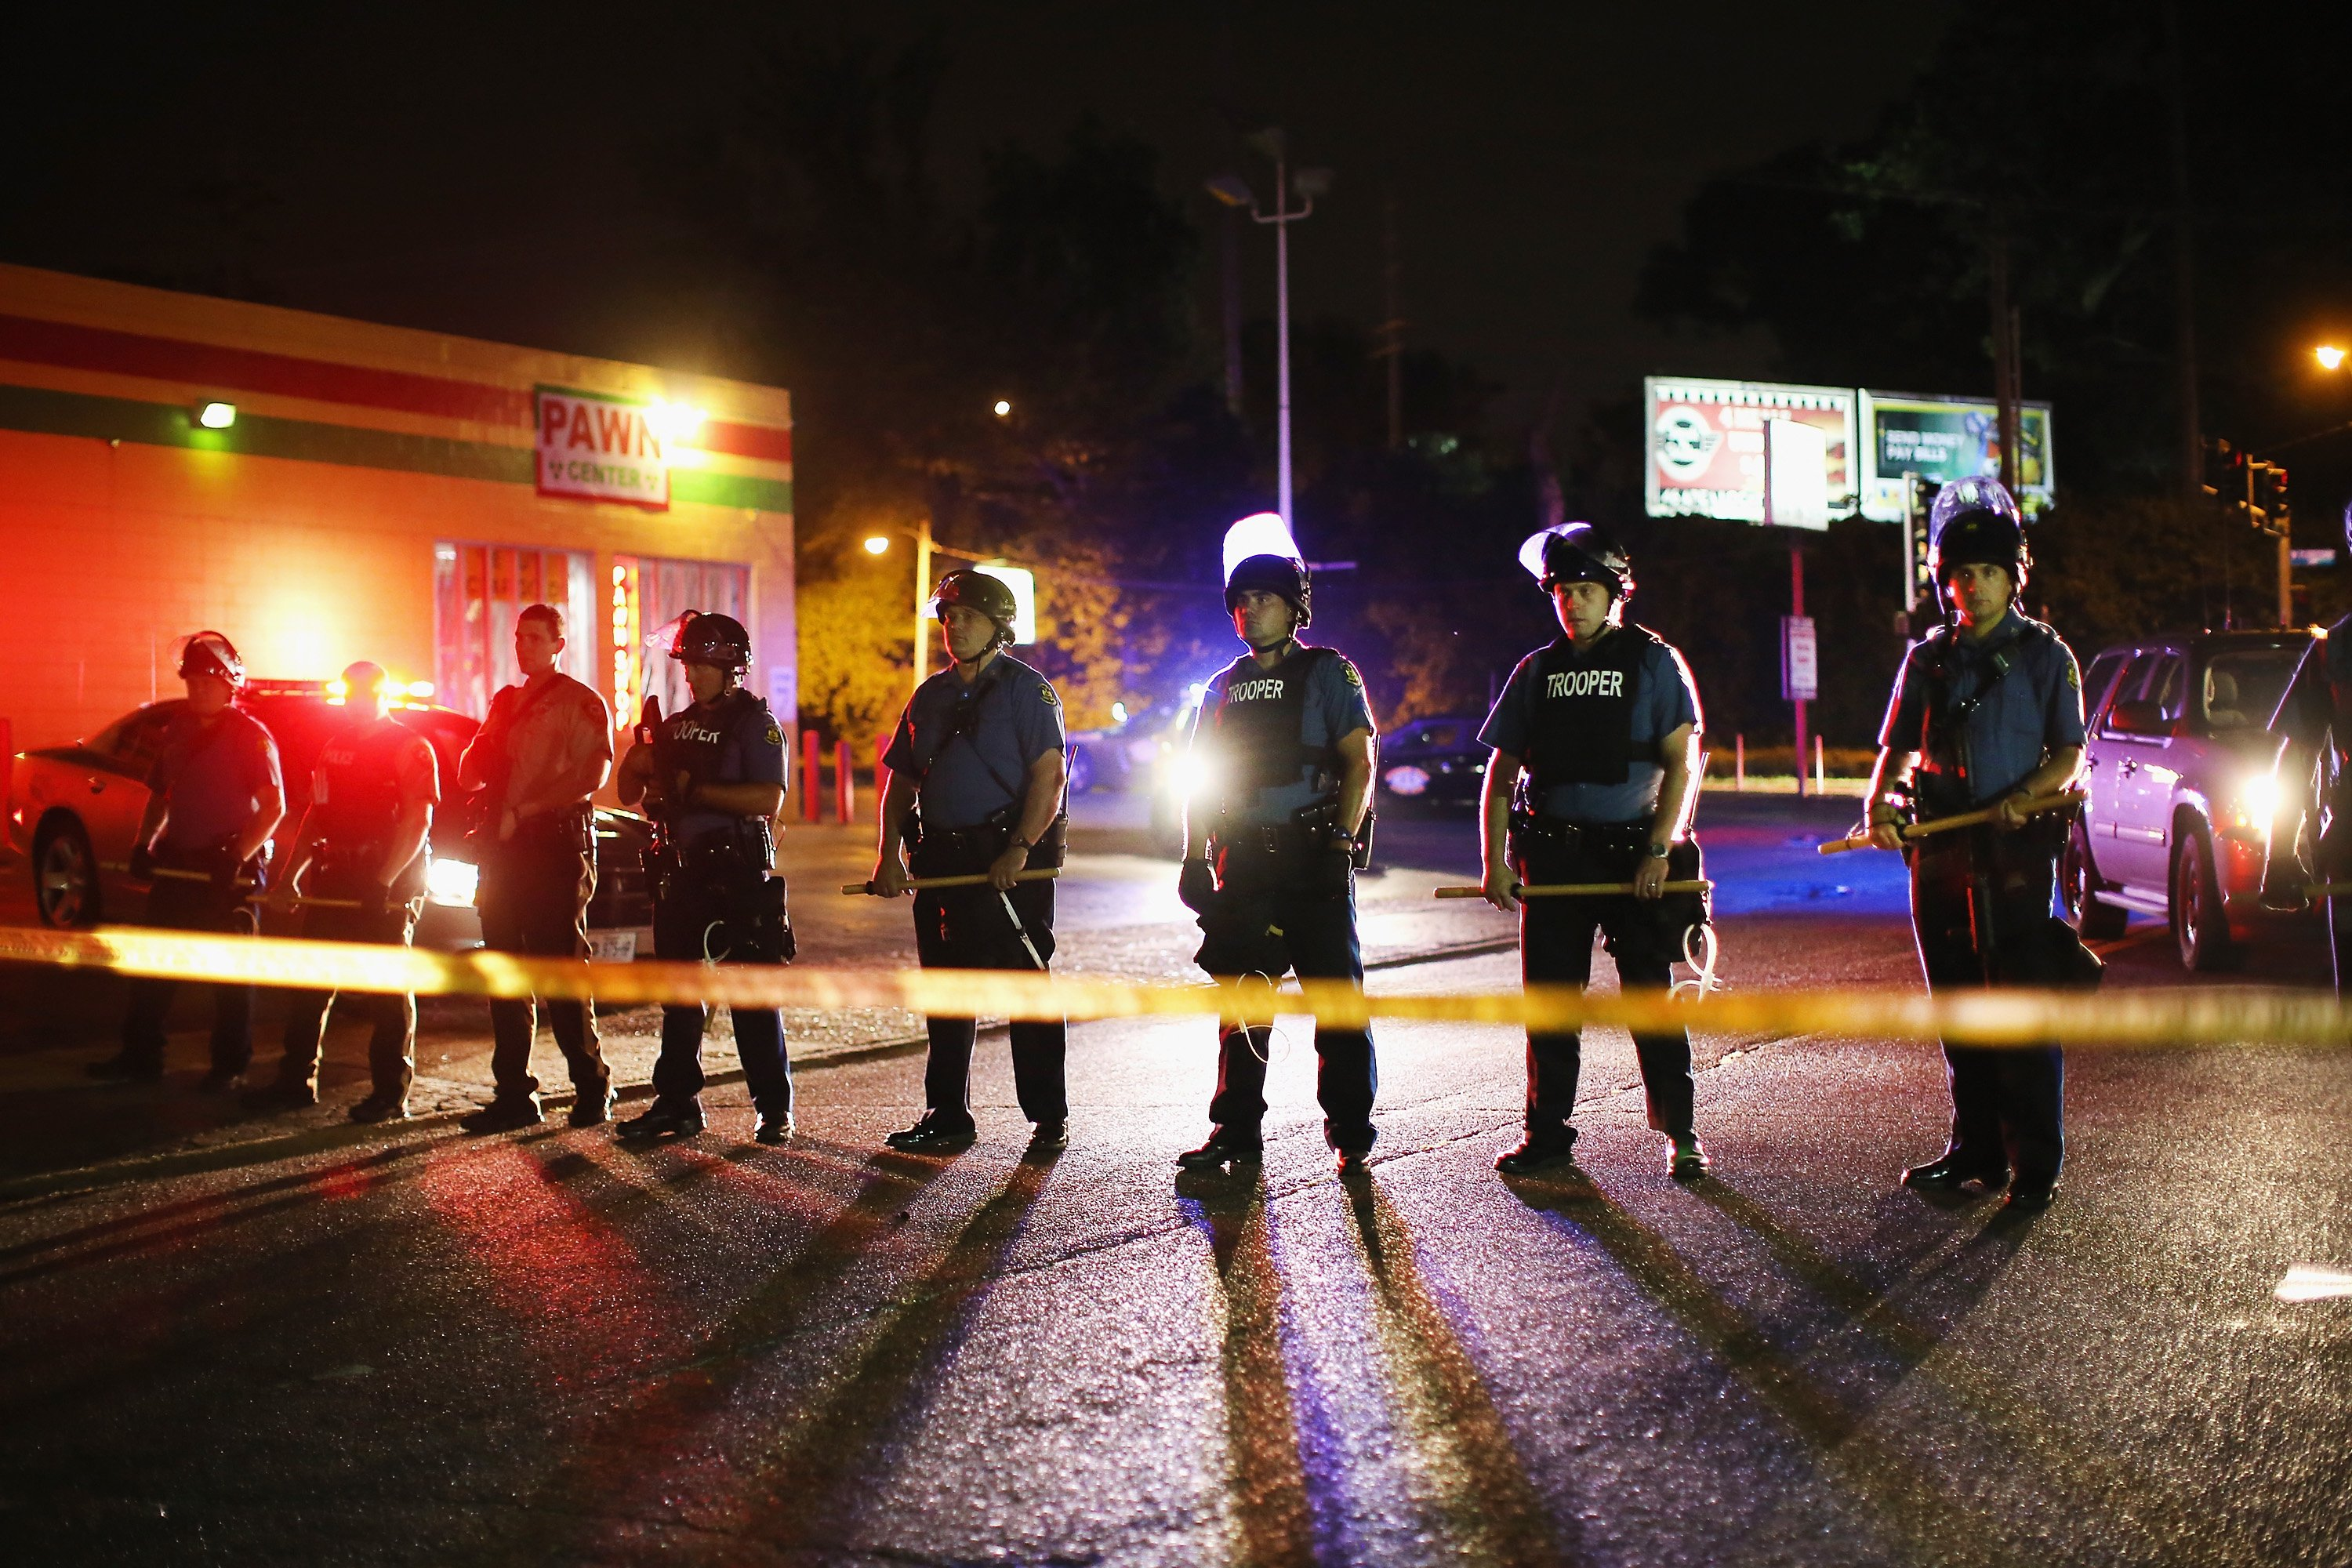 Riot police lock down a neighborhood in Ferguson, Mo. on Aug. 11, 2014.